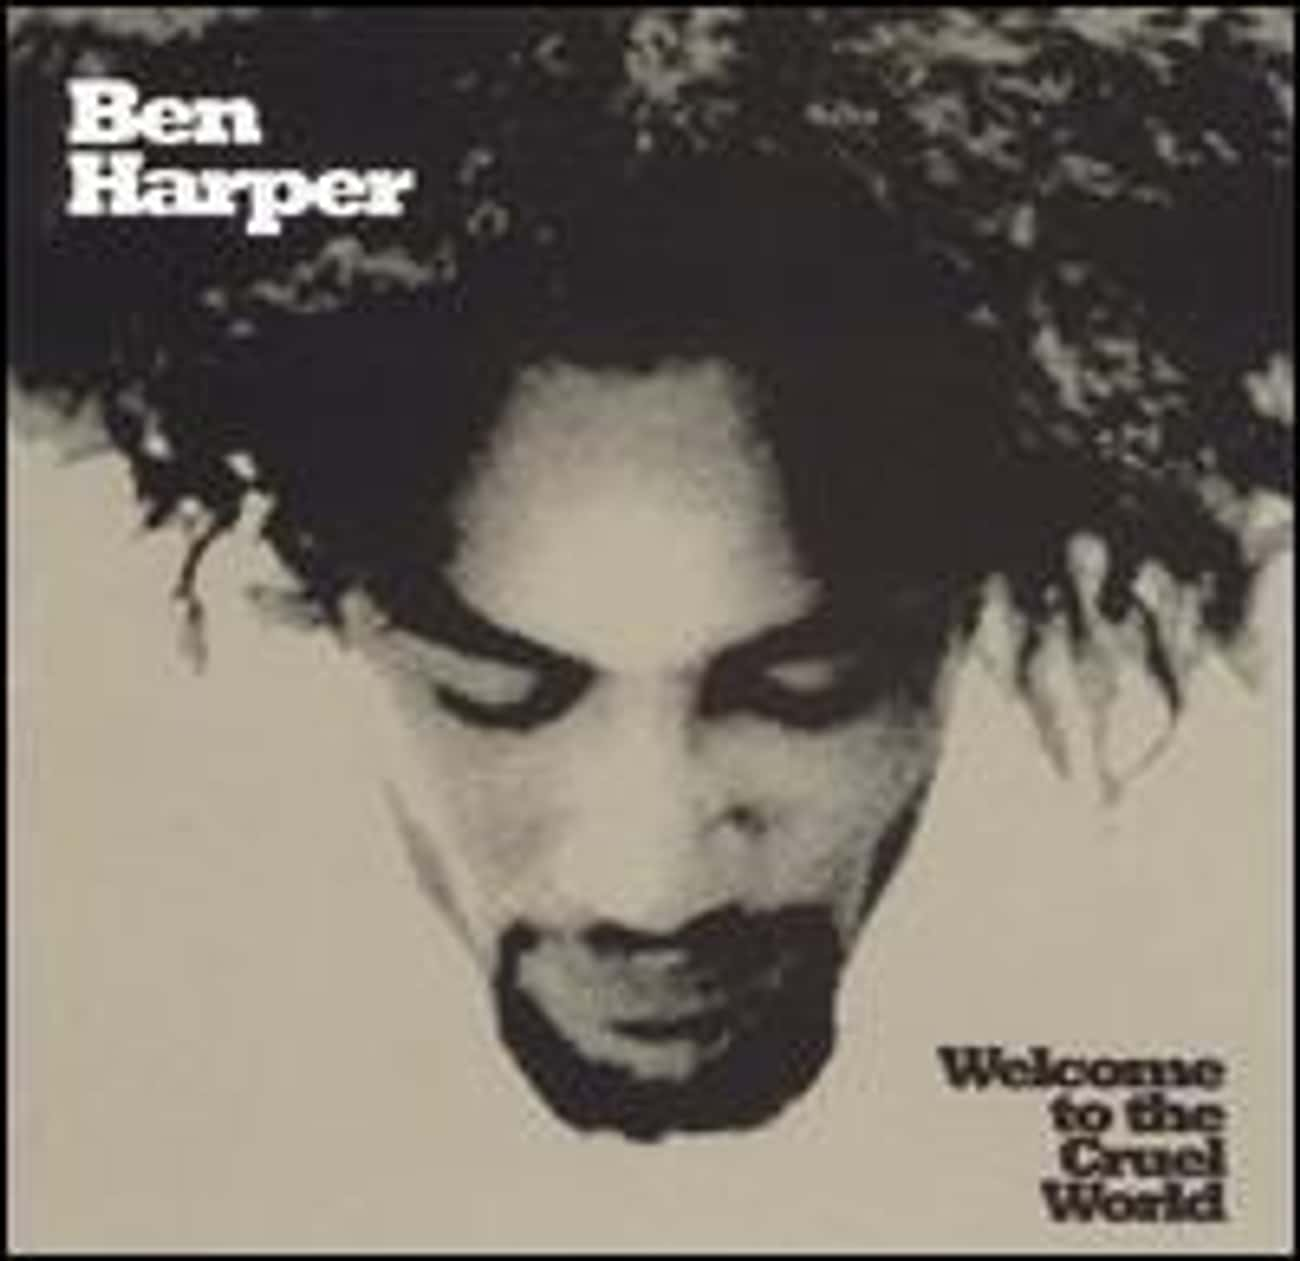 Welcome to the Cruel World is listed (or ranked) 2 on the list The Best Ben Harper Albums of All Time